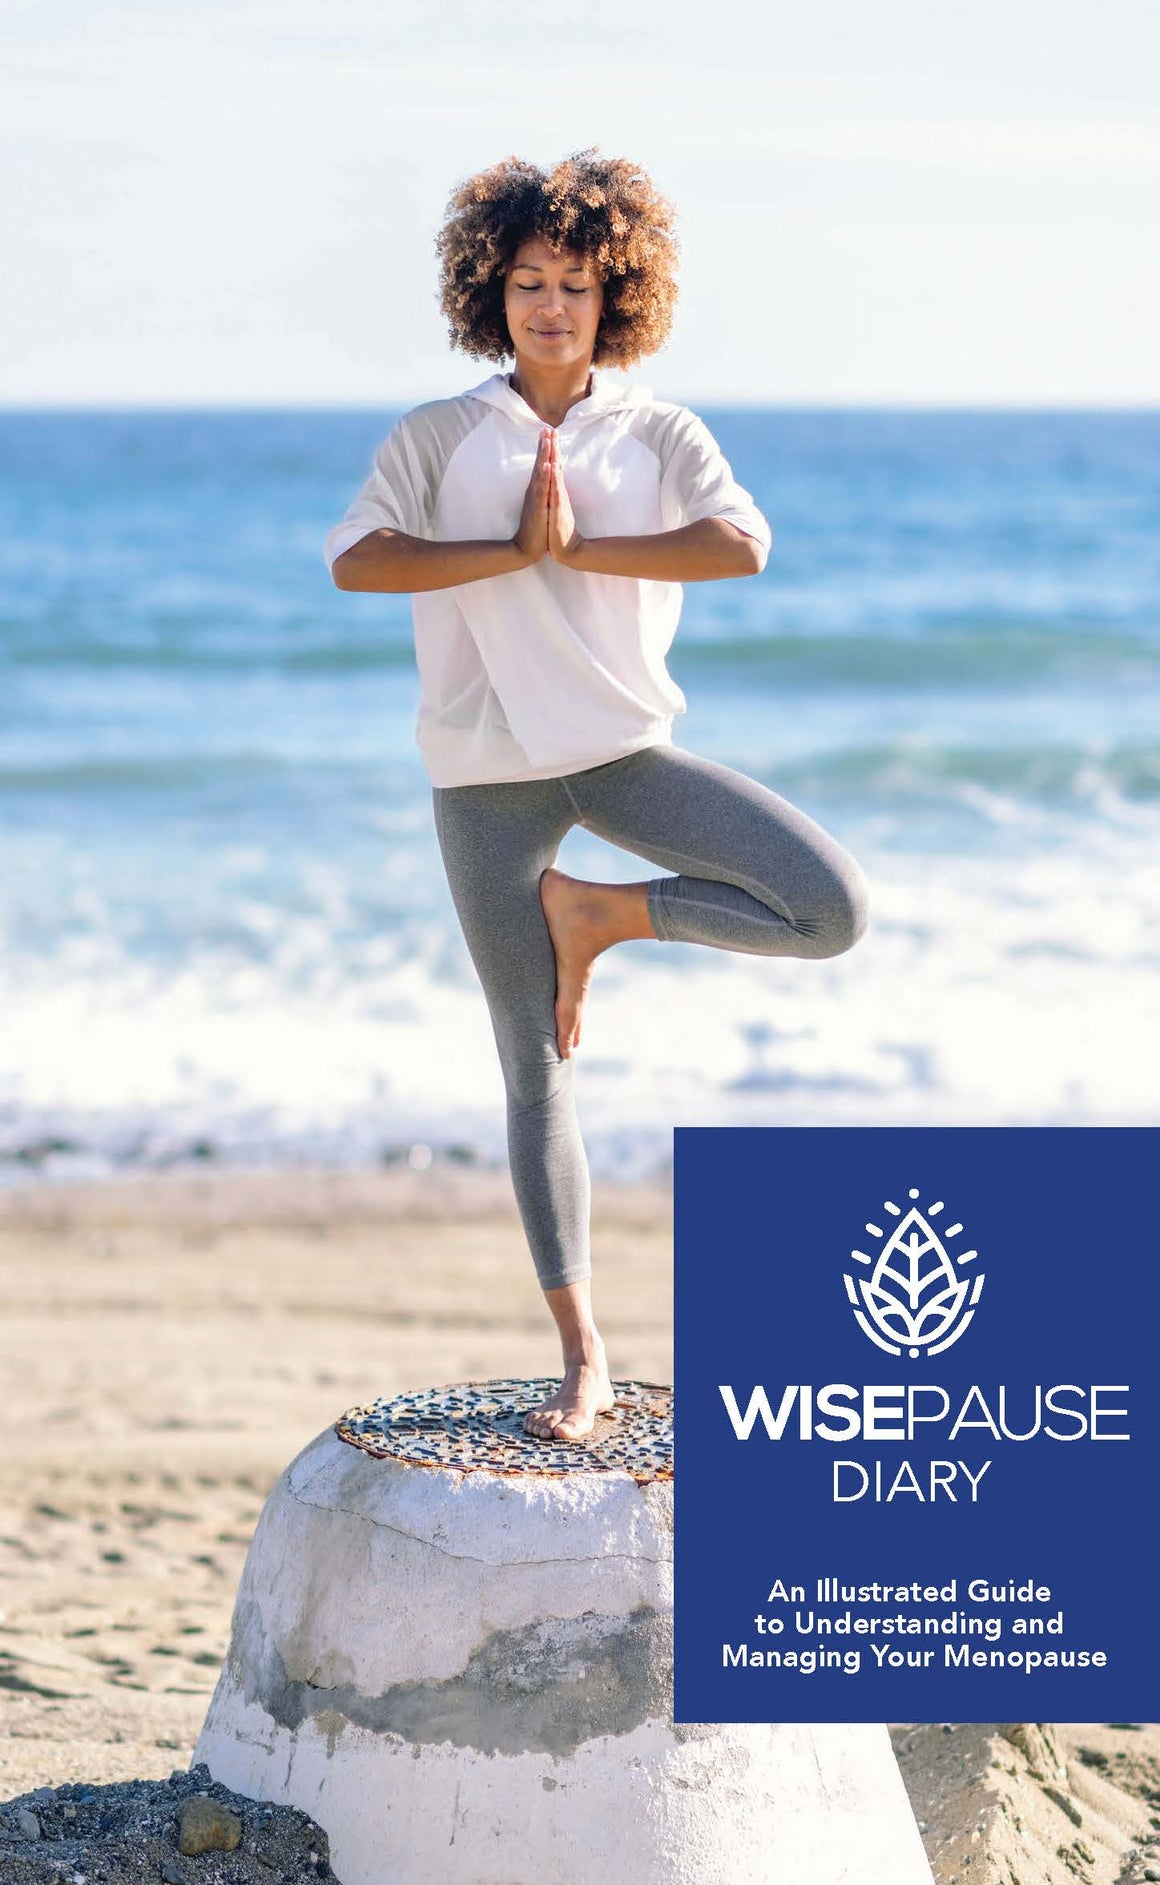 WisePause Diary: An Illustrated Guide to Understanding and Managing Your Menopause